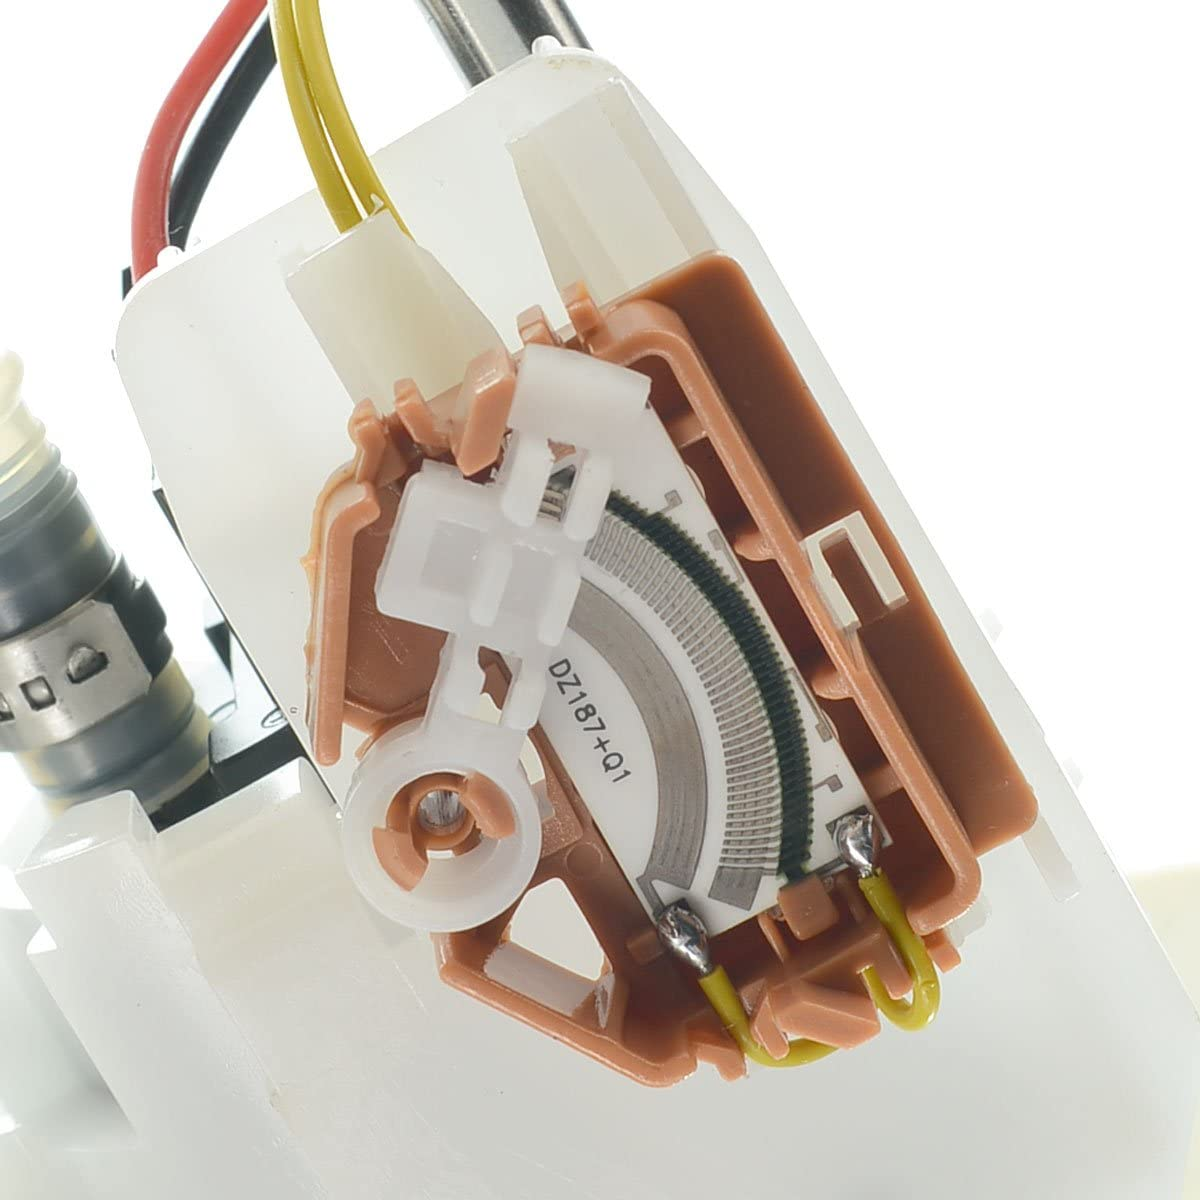 A-Premium Electric Fuel Pump Module Assembly Replacement for 2002-2003 Ford Explorer Sport Trac 4.0L E2348M 4 Pin Connector